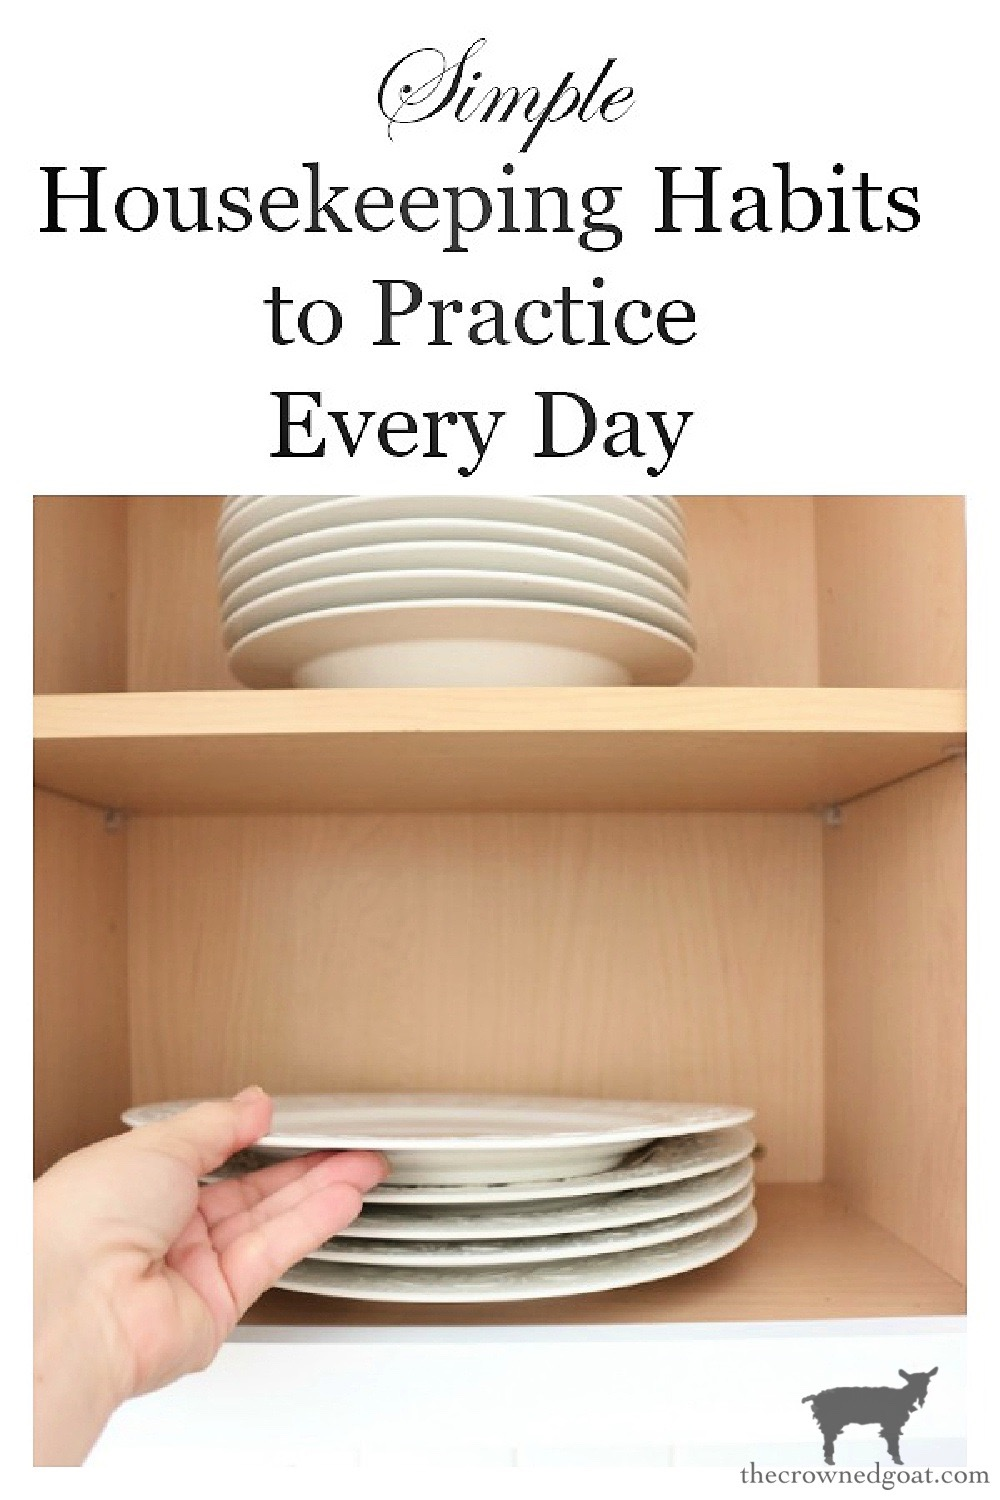 Housekeeping Habits We Practice Every Day-The Crowned Goat